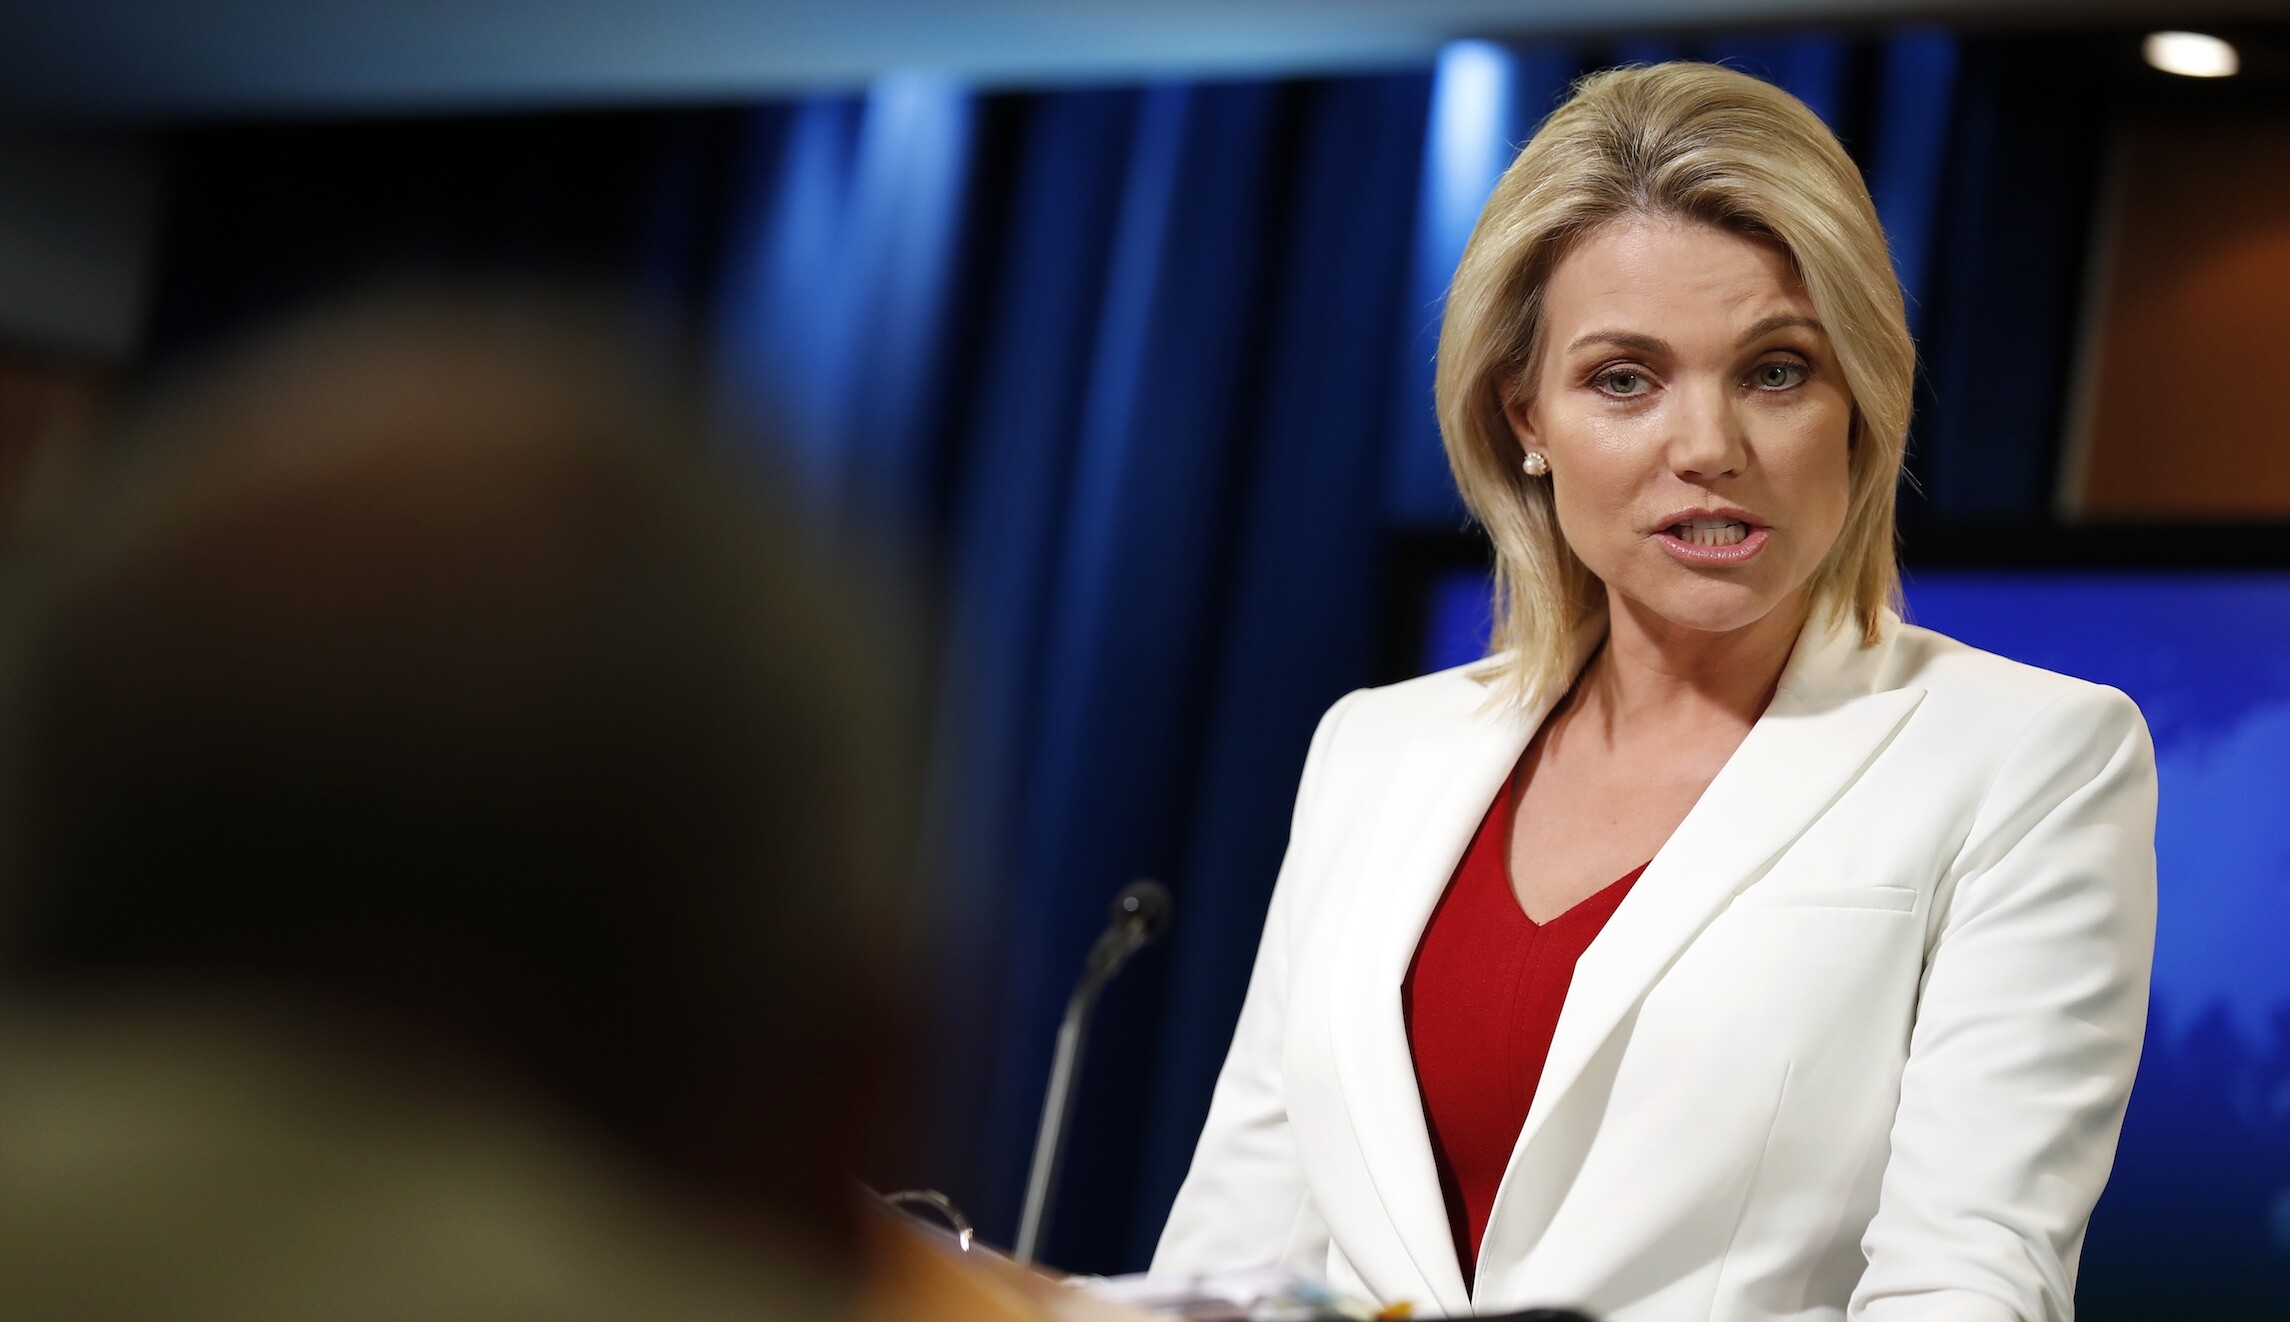 Heather Nauert out: White House press secretary hopeful no longer in contention